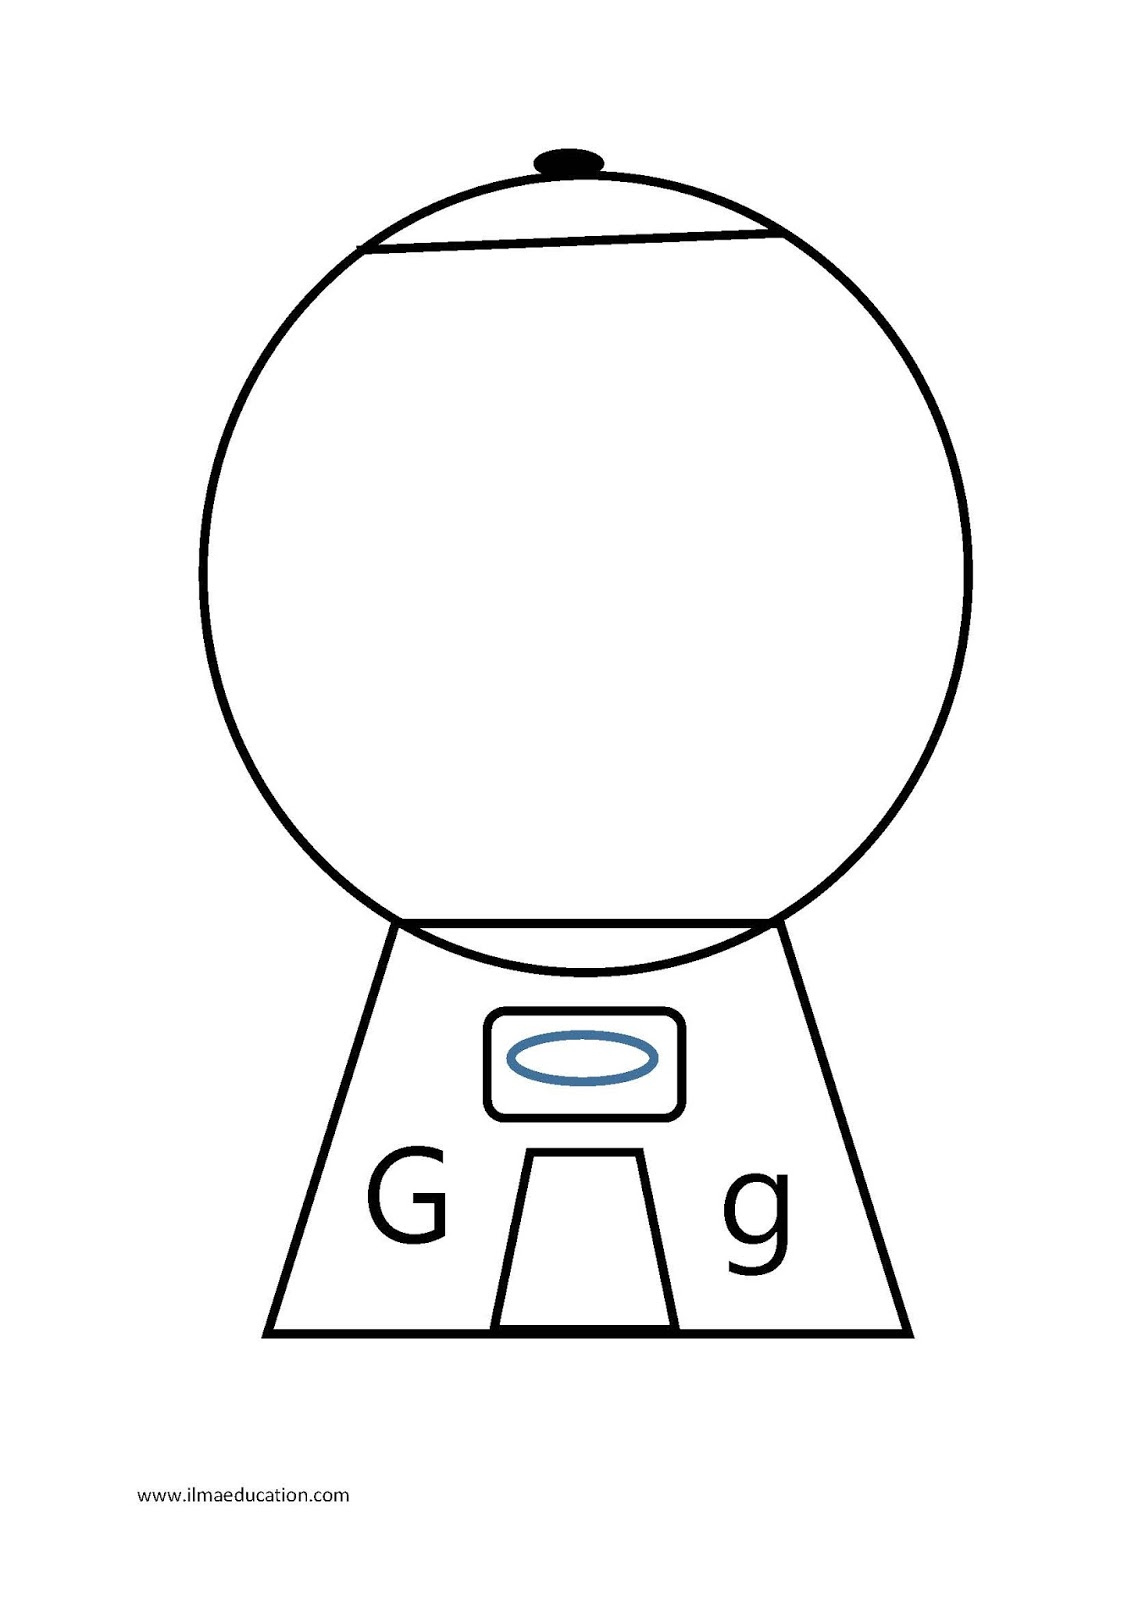 Ilma Education Letter Of The Week G For Gumballs